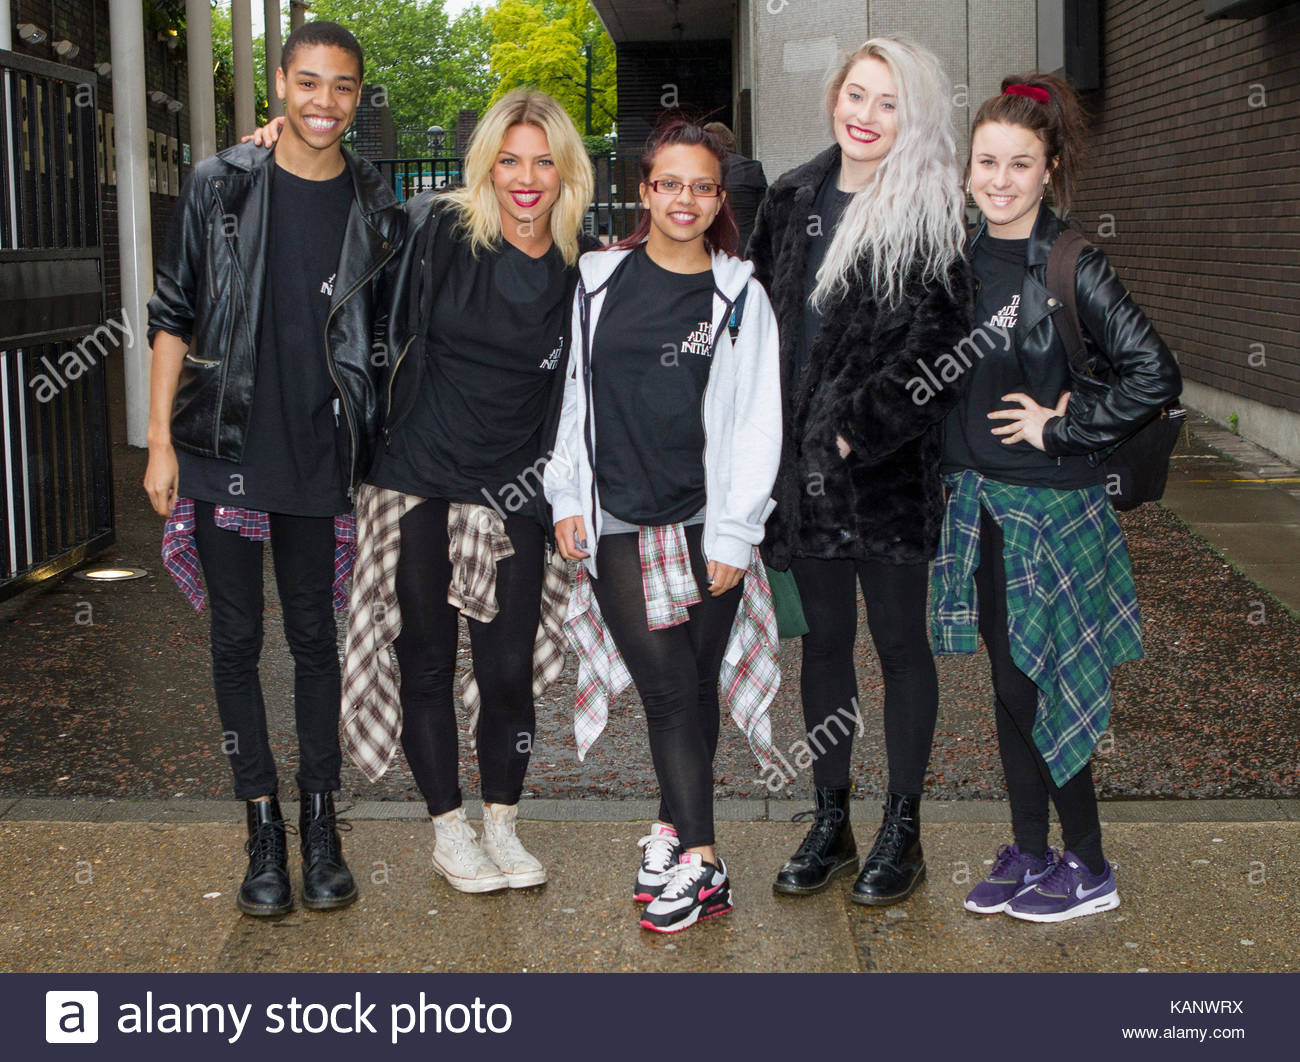 Addict Initiative. BGT dance group, Addict Initiative are pictured arriving at the ITV studios for a guest appearance - Stock Image